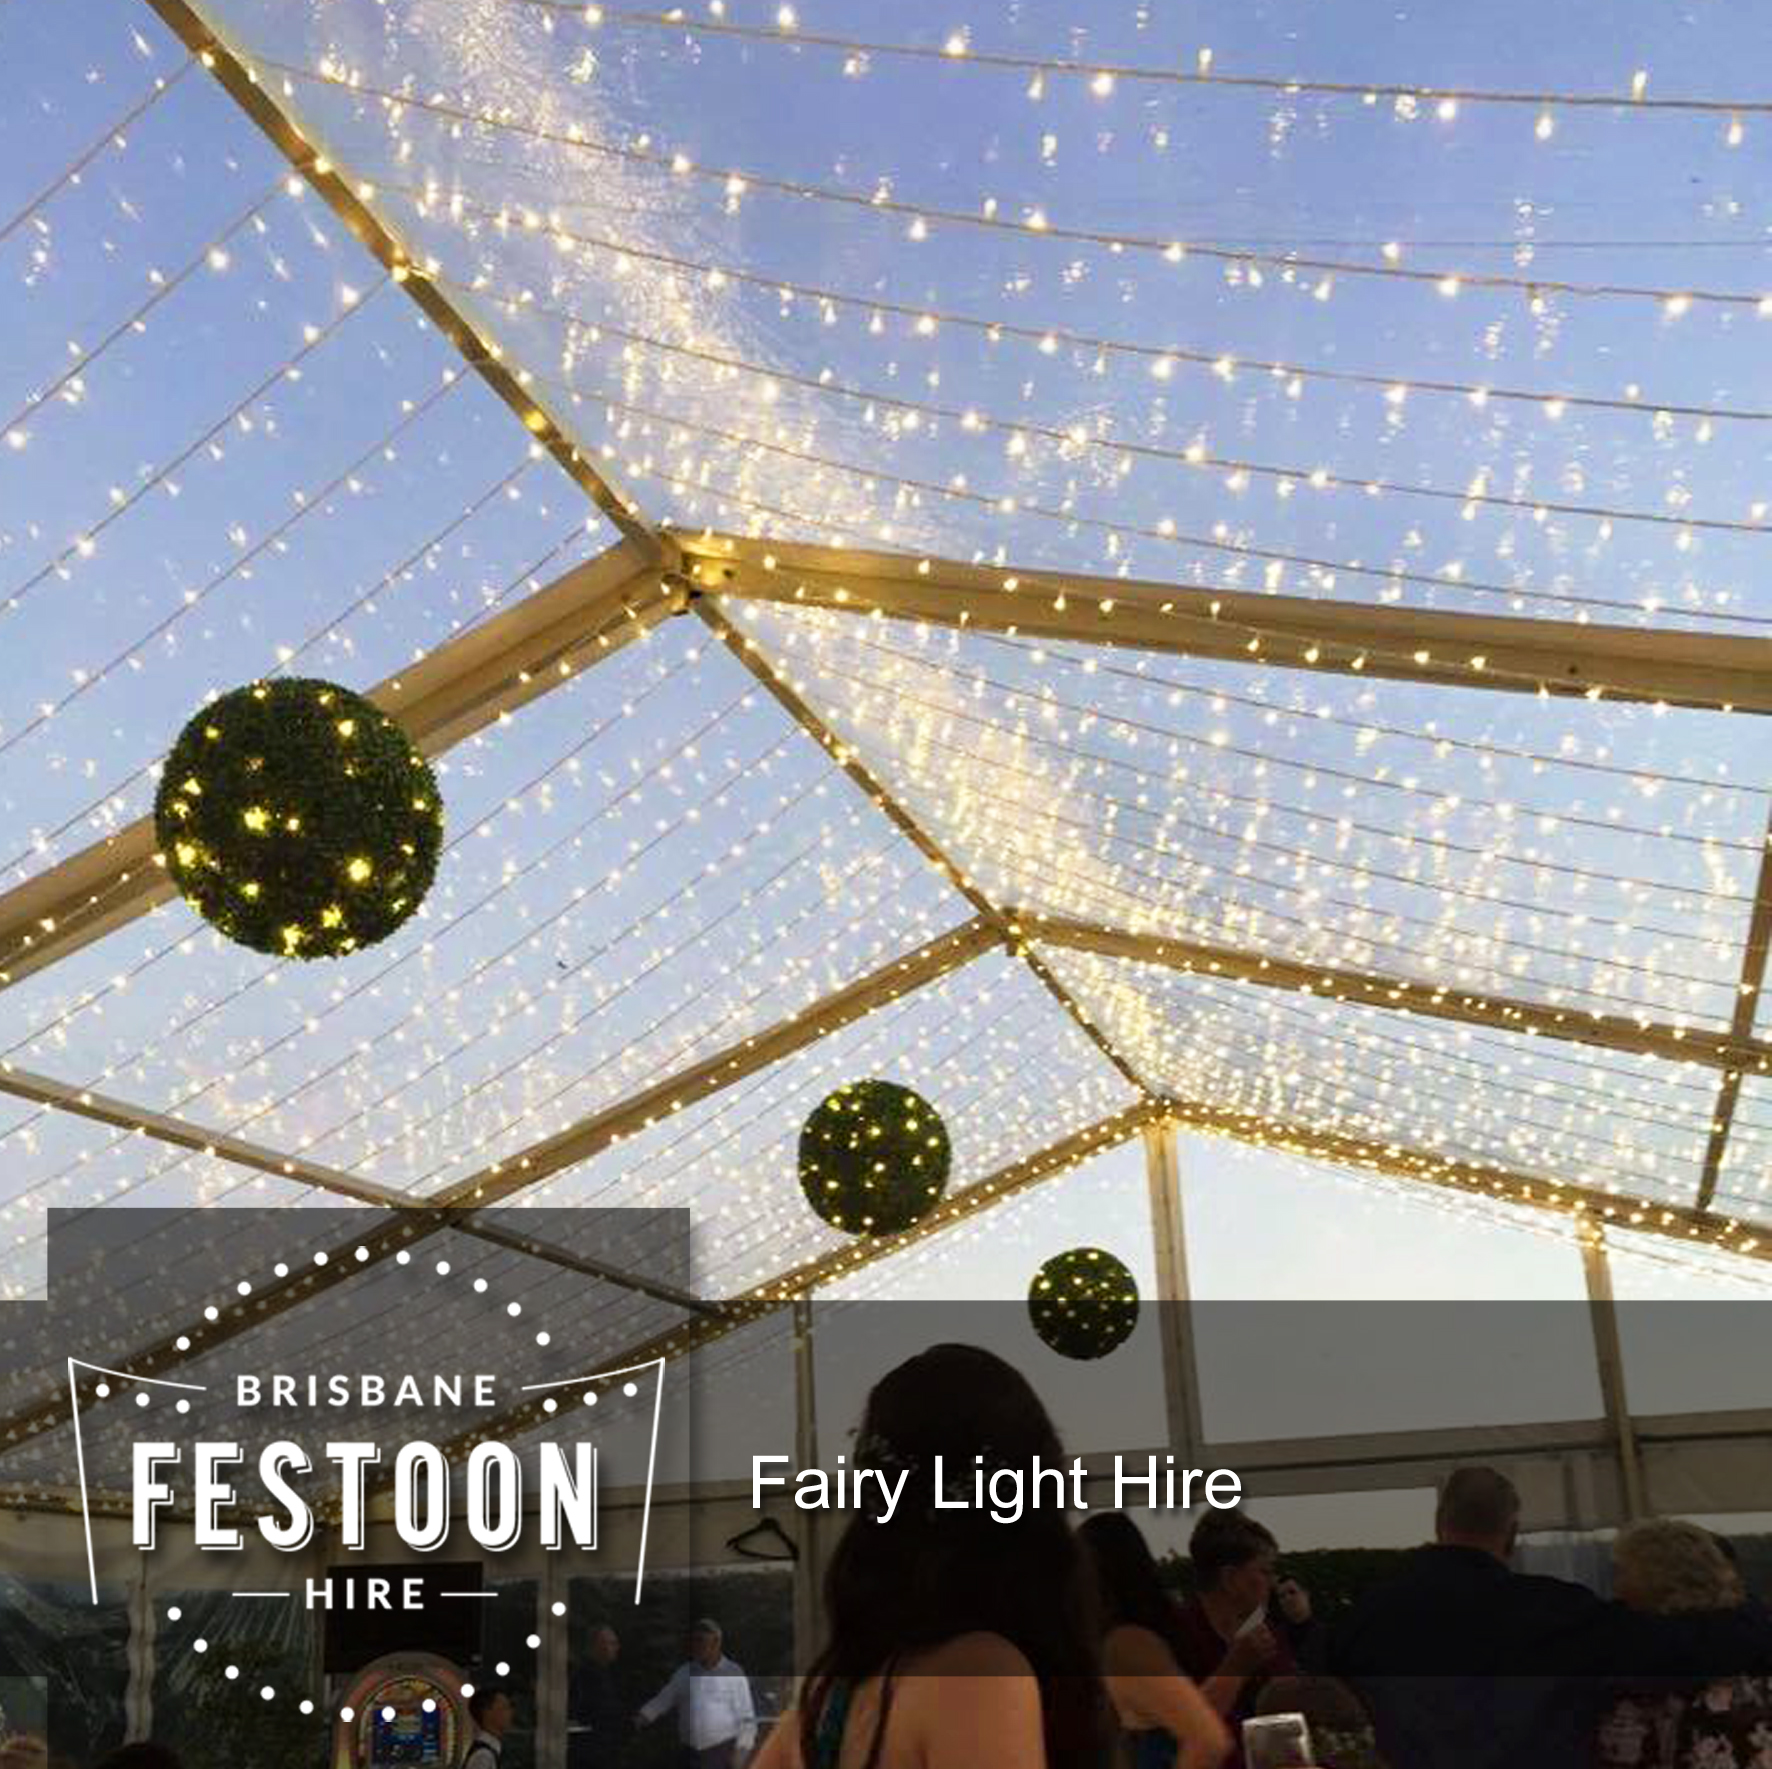 Brisbane Festoon Hire - Fairy Light Hire 4.jpg